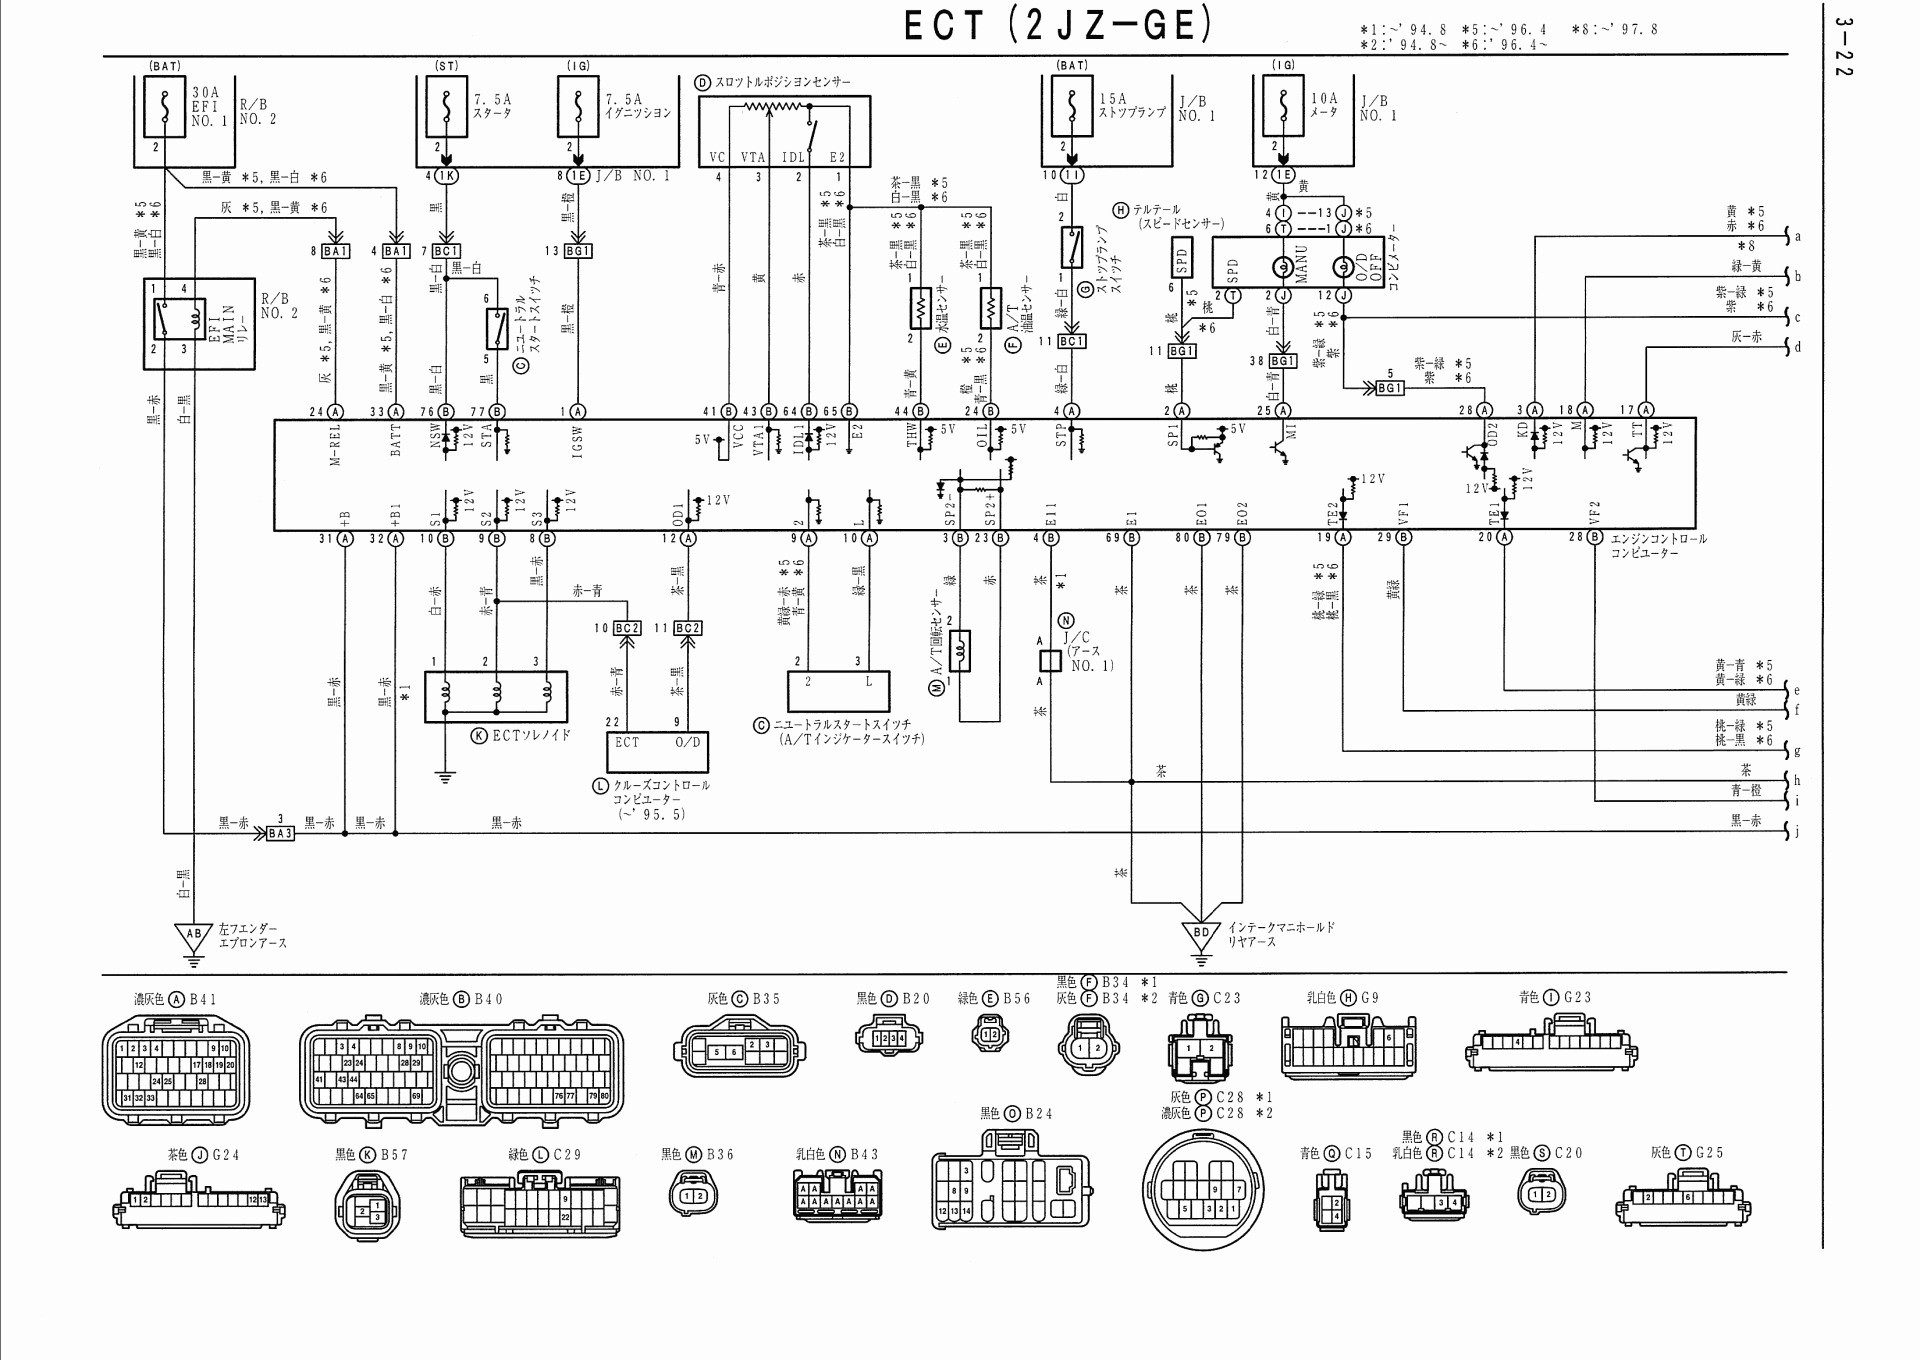 98 Bmw Z3 Wiring Diagram Trusted Wiring Diagram BMW 323I Fuse Diagram 1997  Bmw Z3 Fuse Diagram